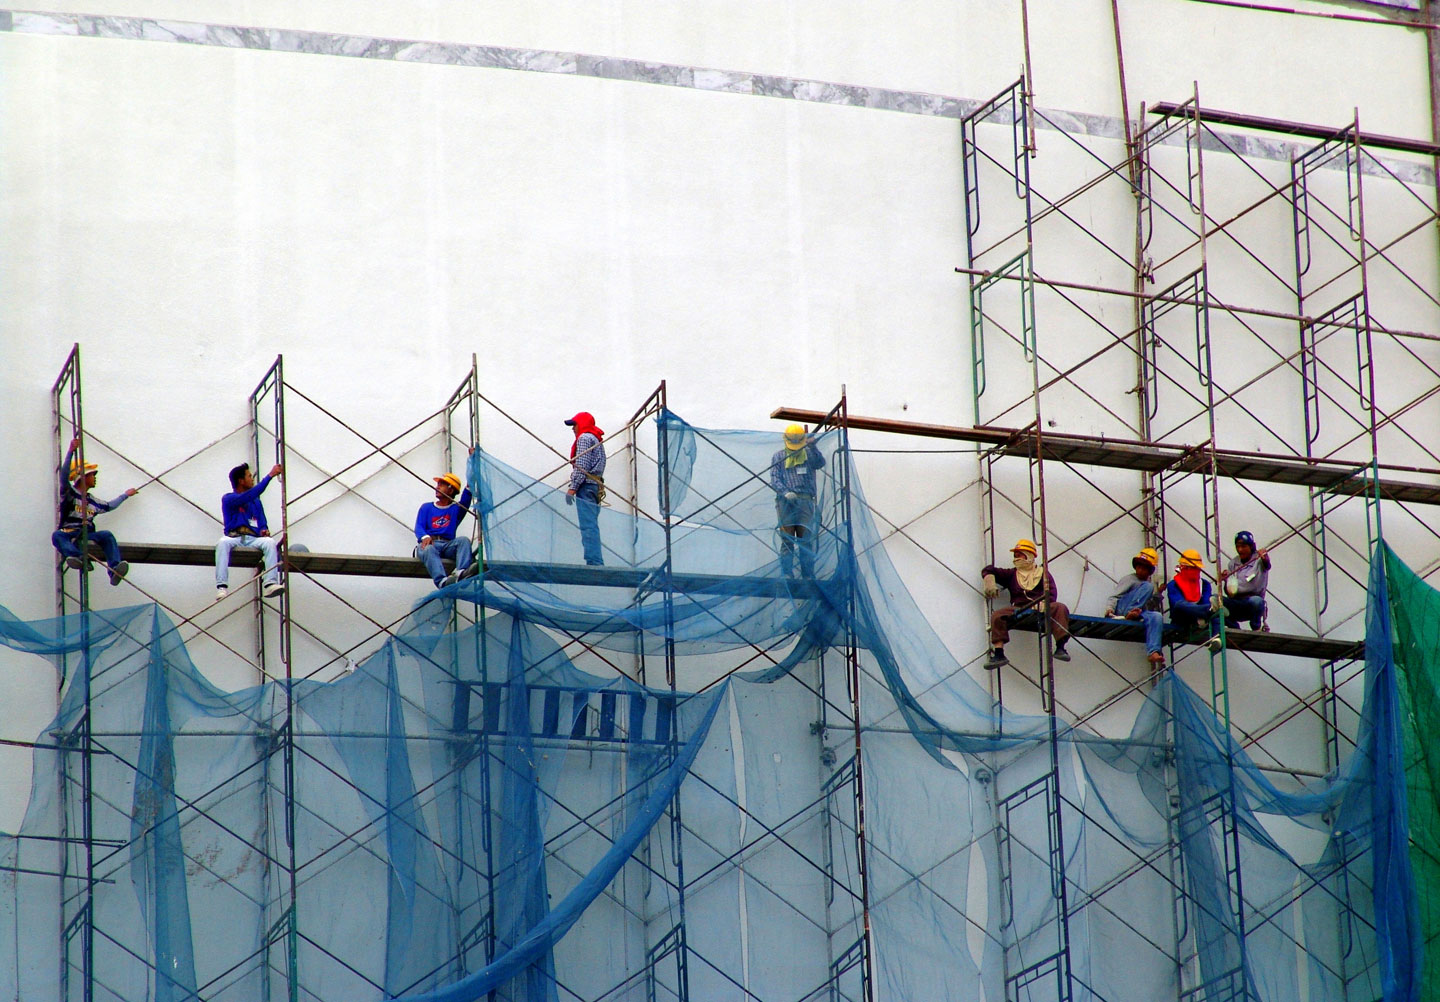 schwindelfrei am Bau - Martin Abegglen Bangkok Construction Workers - CC BY-SA 2.0